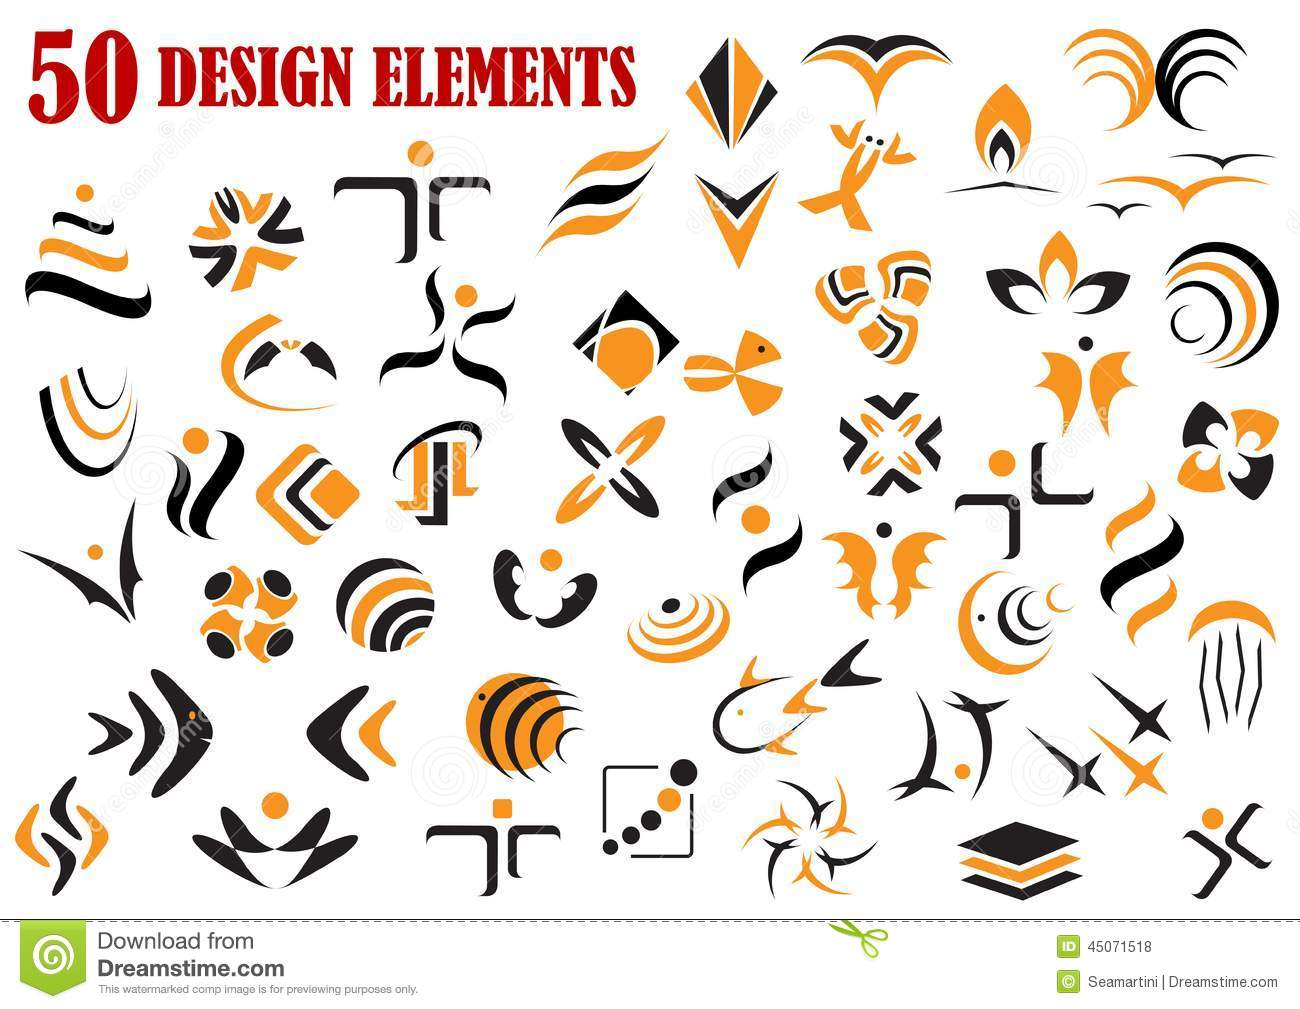 Visual Design Elements : Abstract graphic design elements and symbols stock vector